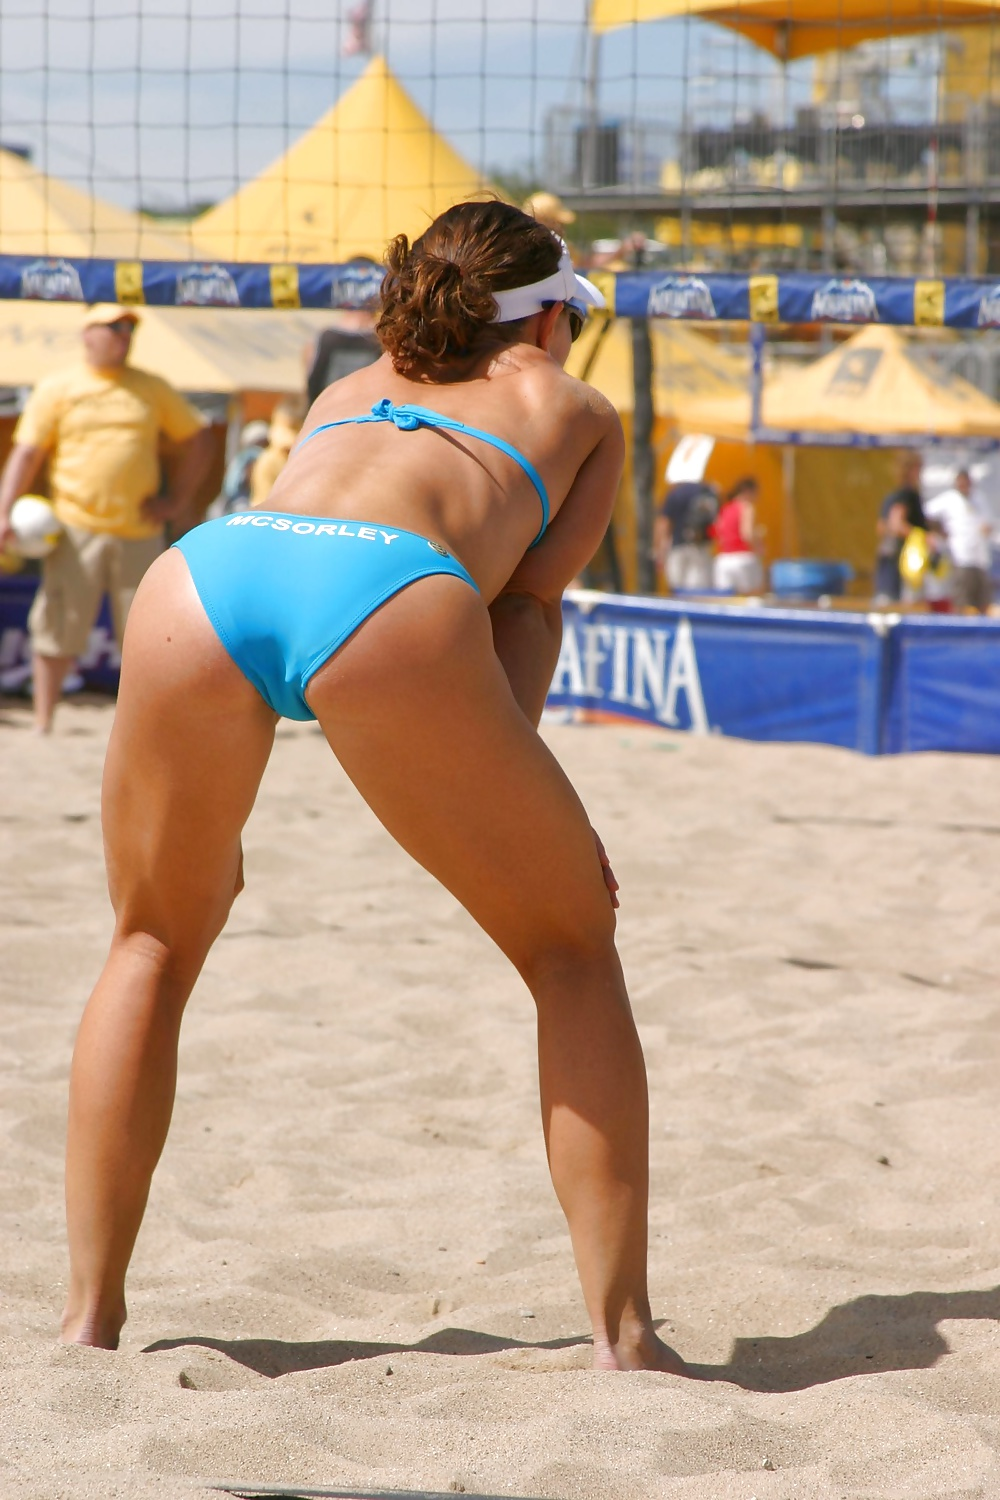 Sport Girls Voyeur Panties Tennis Upskirt Beach Volleyball -6948